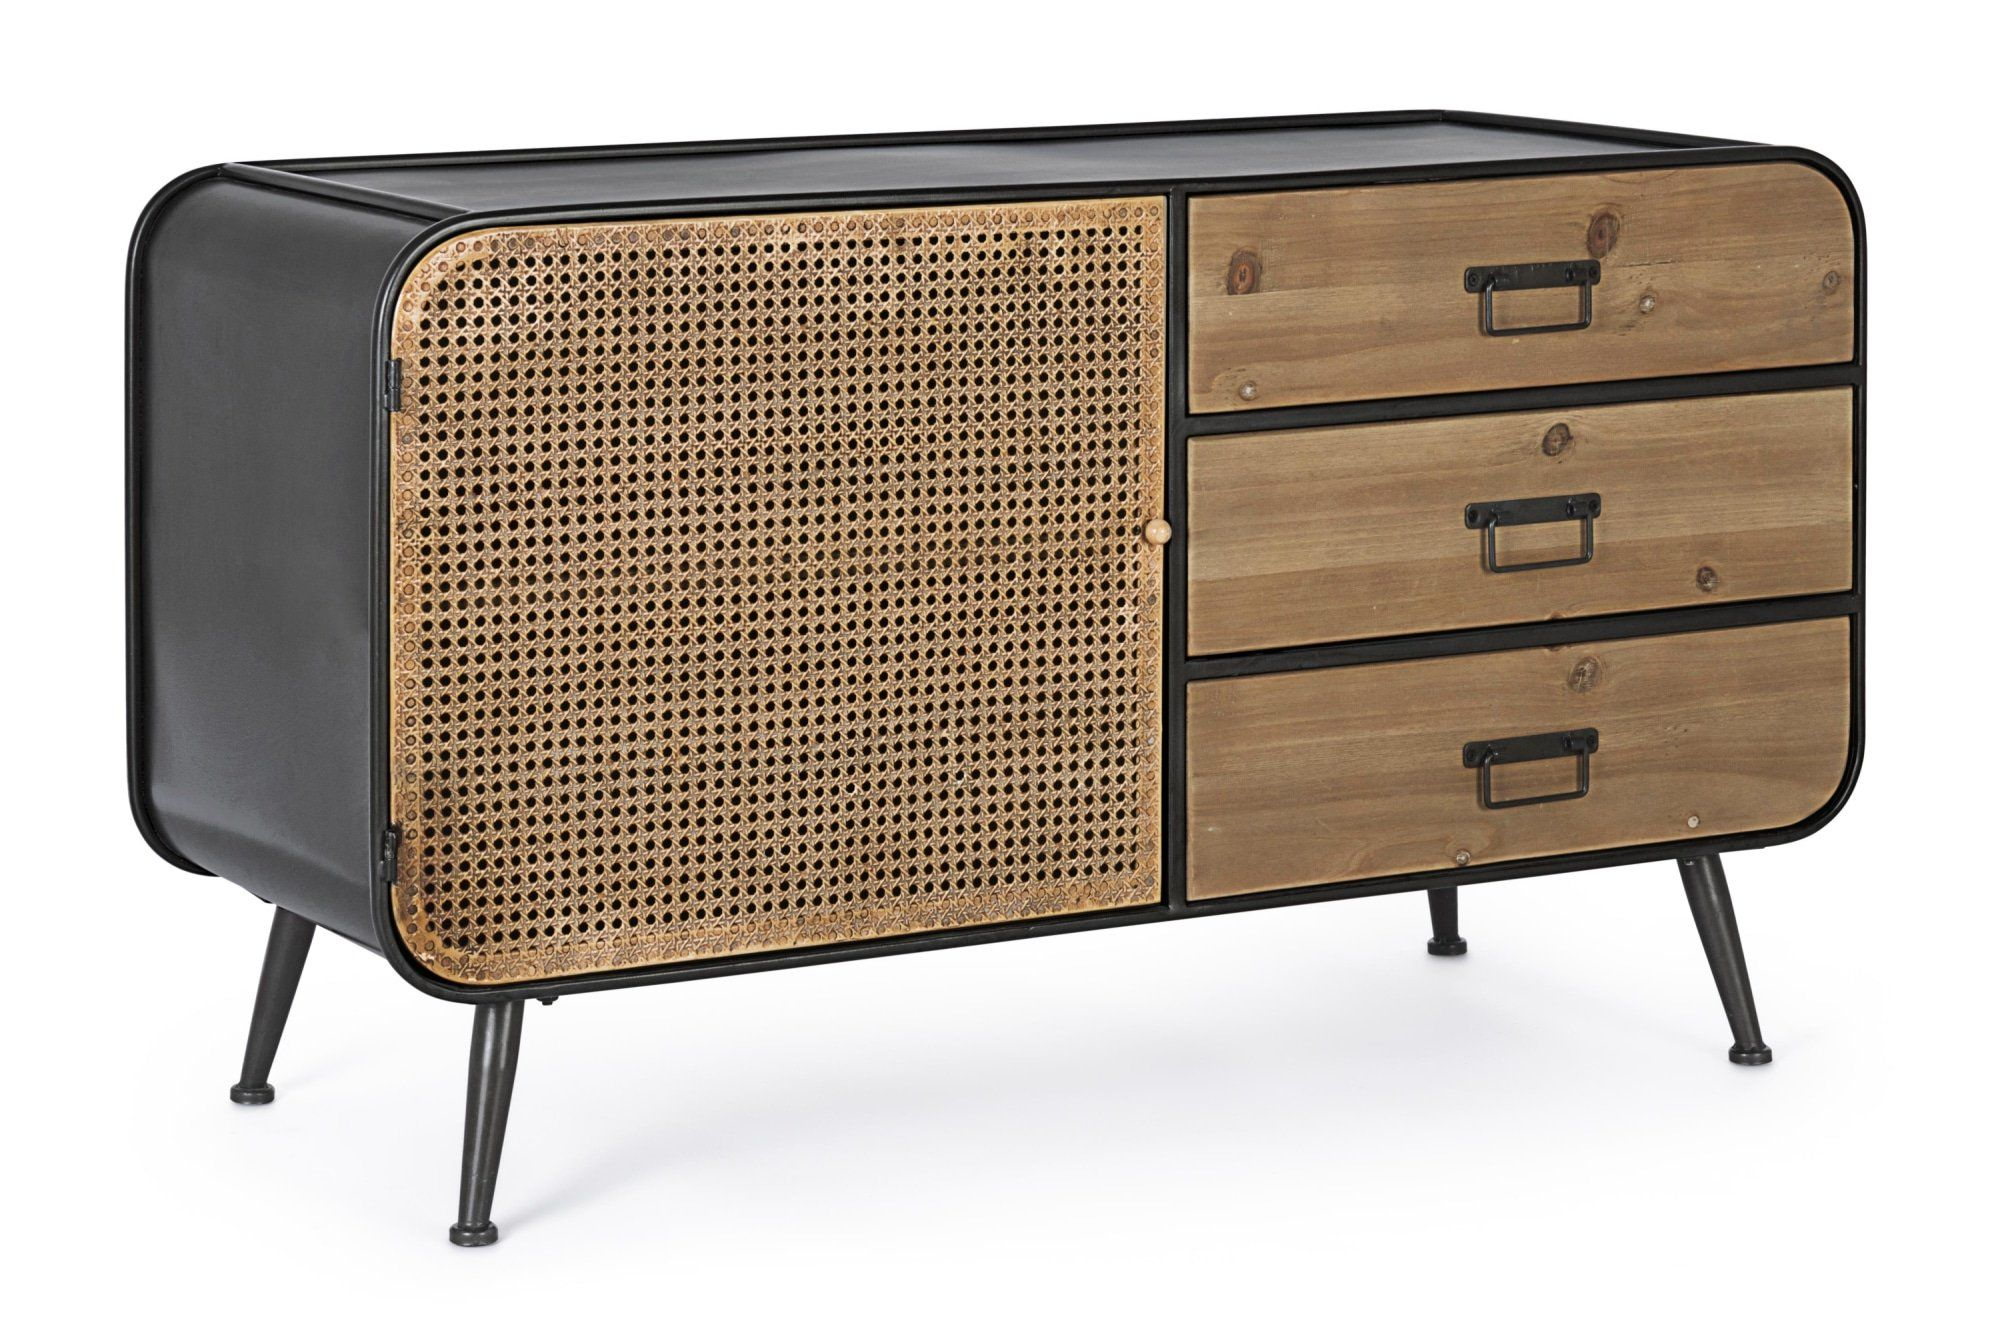 ELTON sideboard with 1 door and 3 drawers